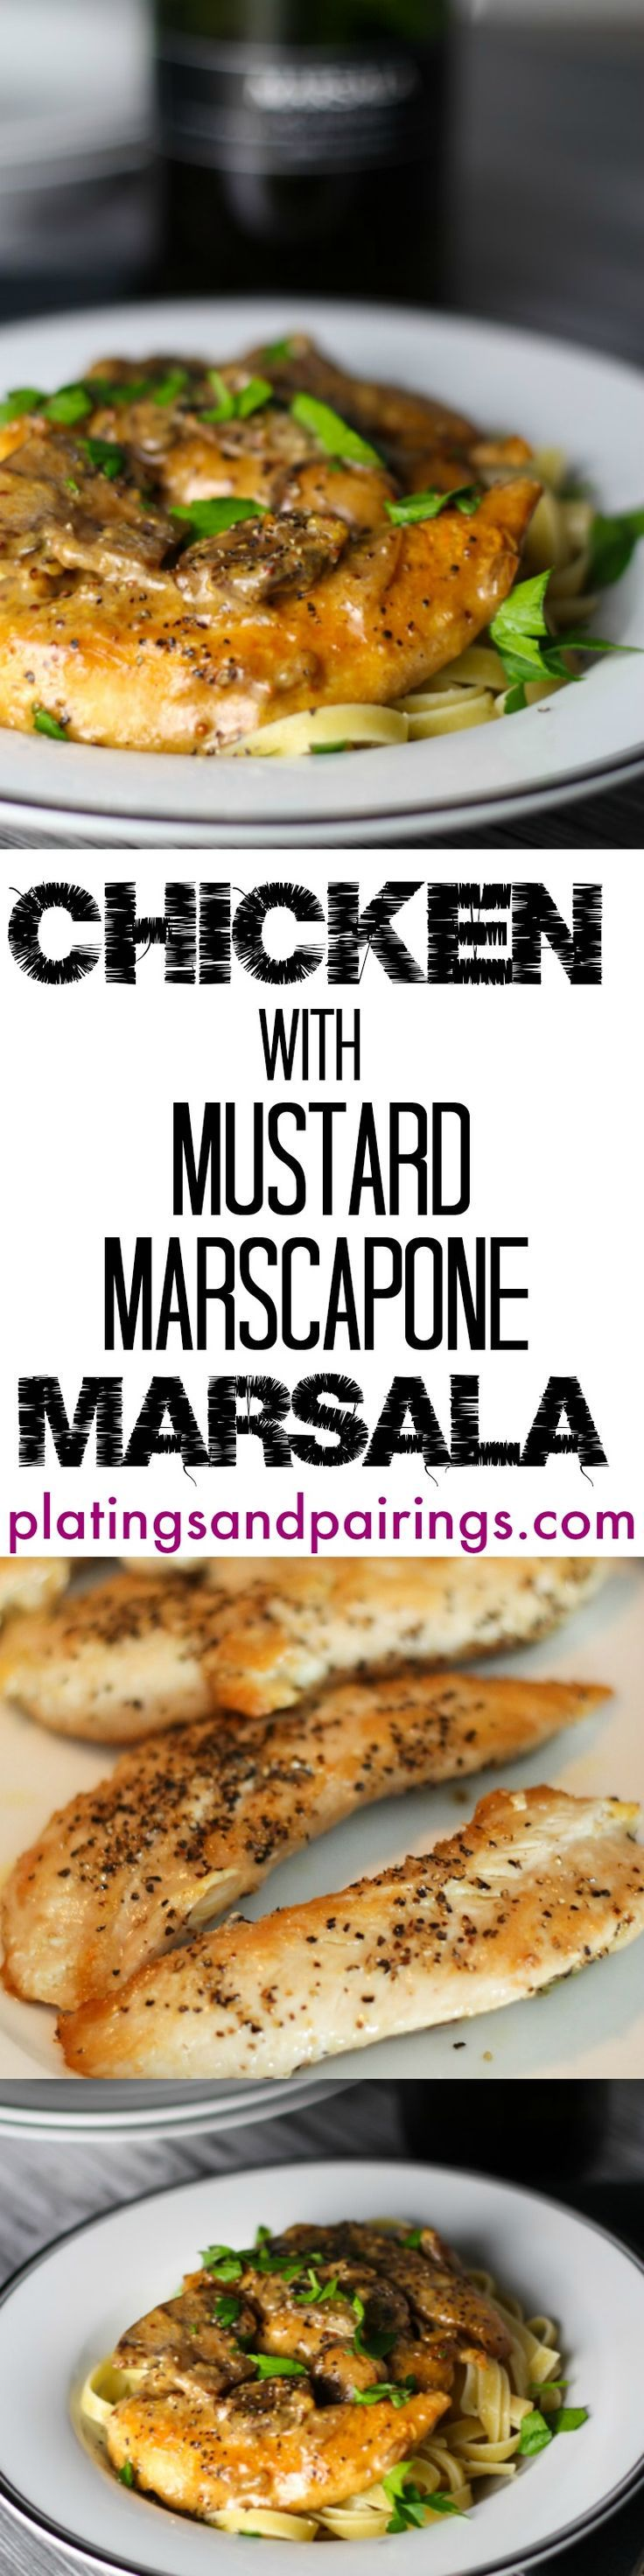 Very good, very easy chicken Marsala. The addition of mascarpone and Dijon mustard works well. Could use far less butter - a lot of grease in the bottom of the pan.  Will make again.  ST